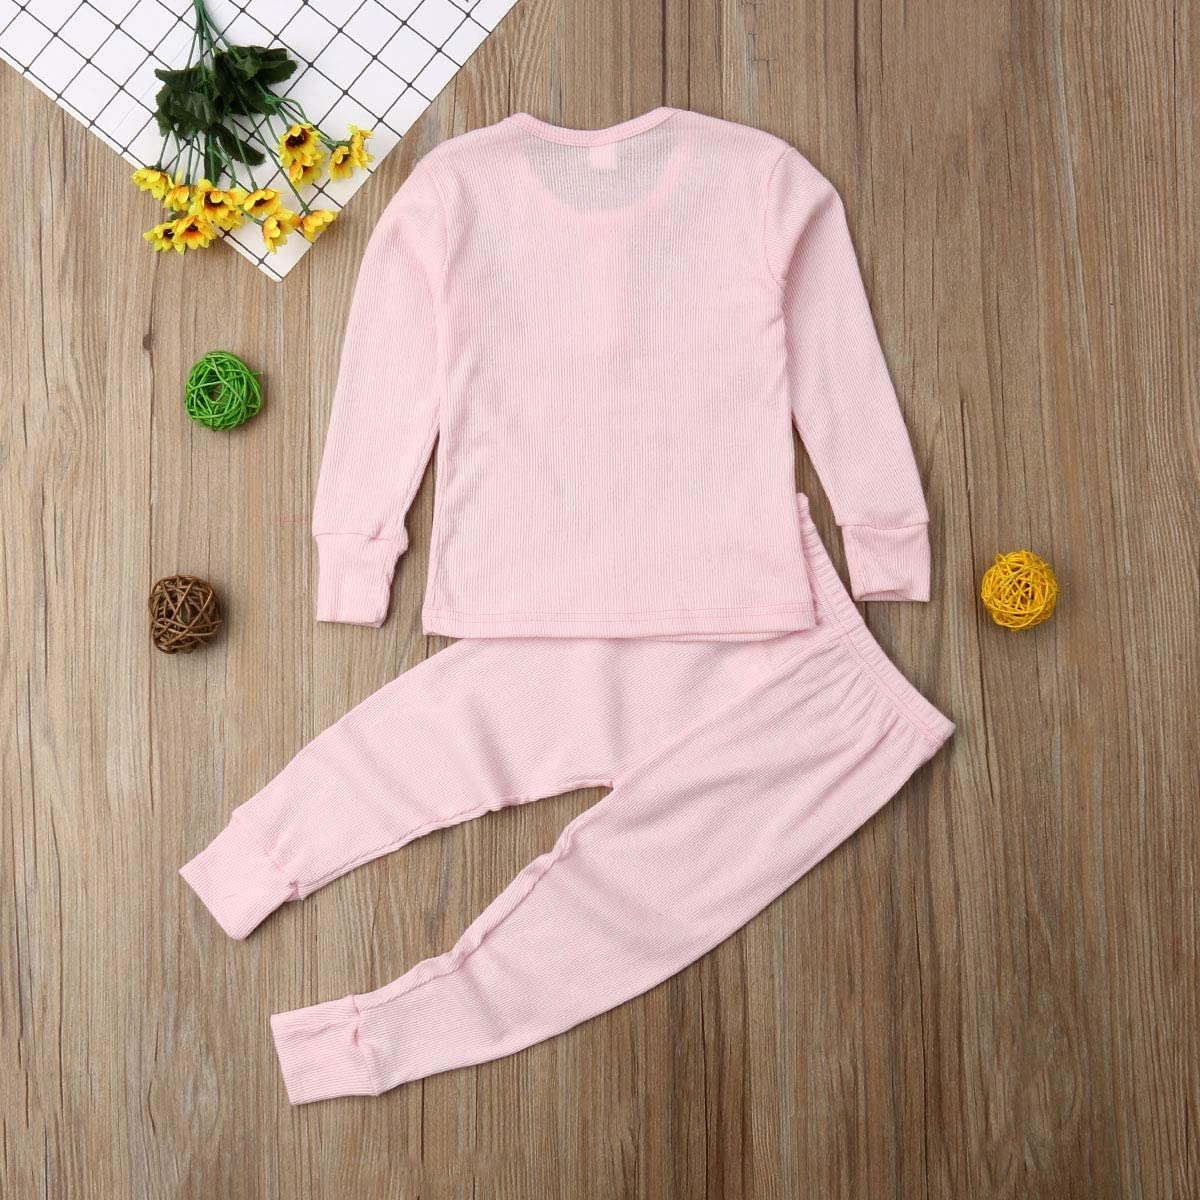 Long Sleeve Top and Pant 2-Piece Pj Set Underwear Fall Toddler Baby Boys Girls Snug-fit Pajamas Sleepwear Sets